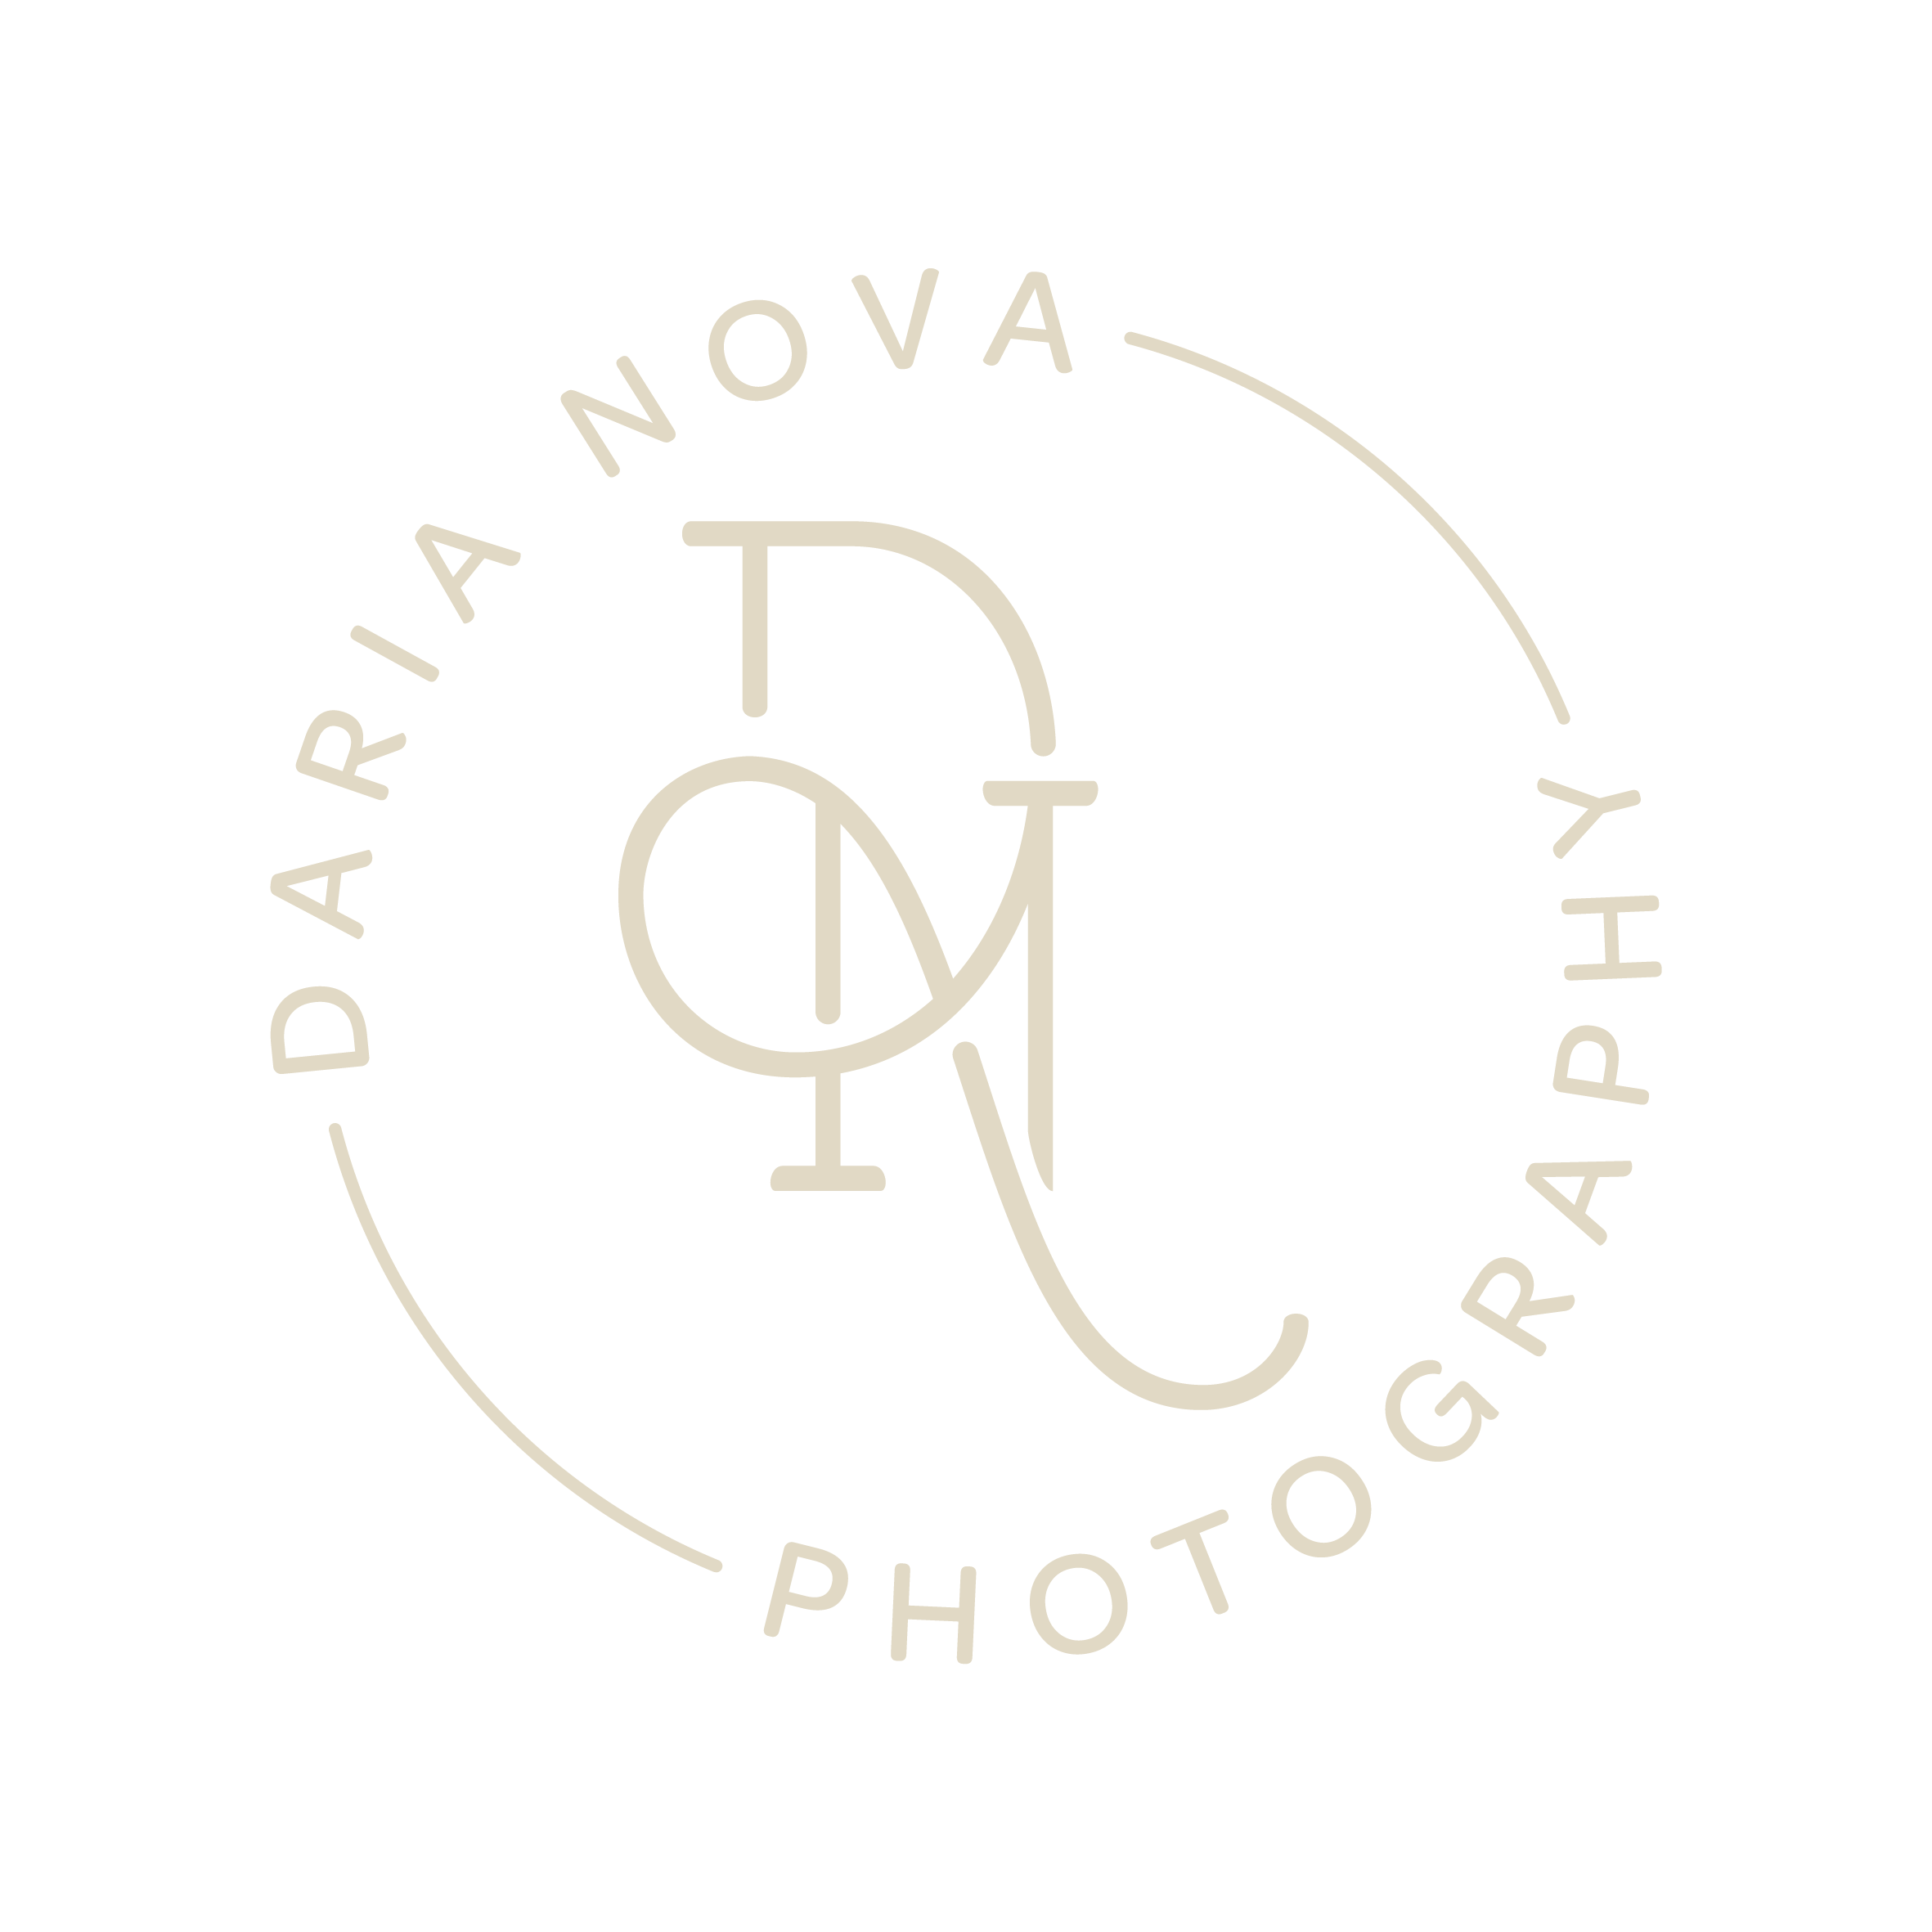 daria-nova-photography-logo